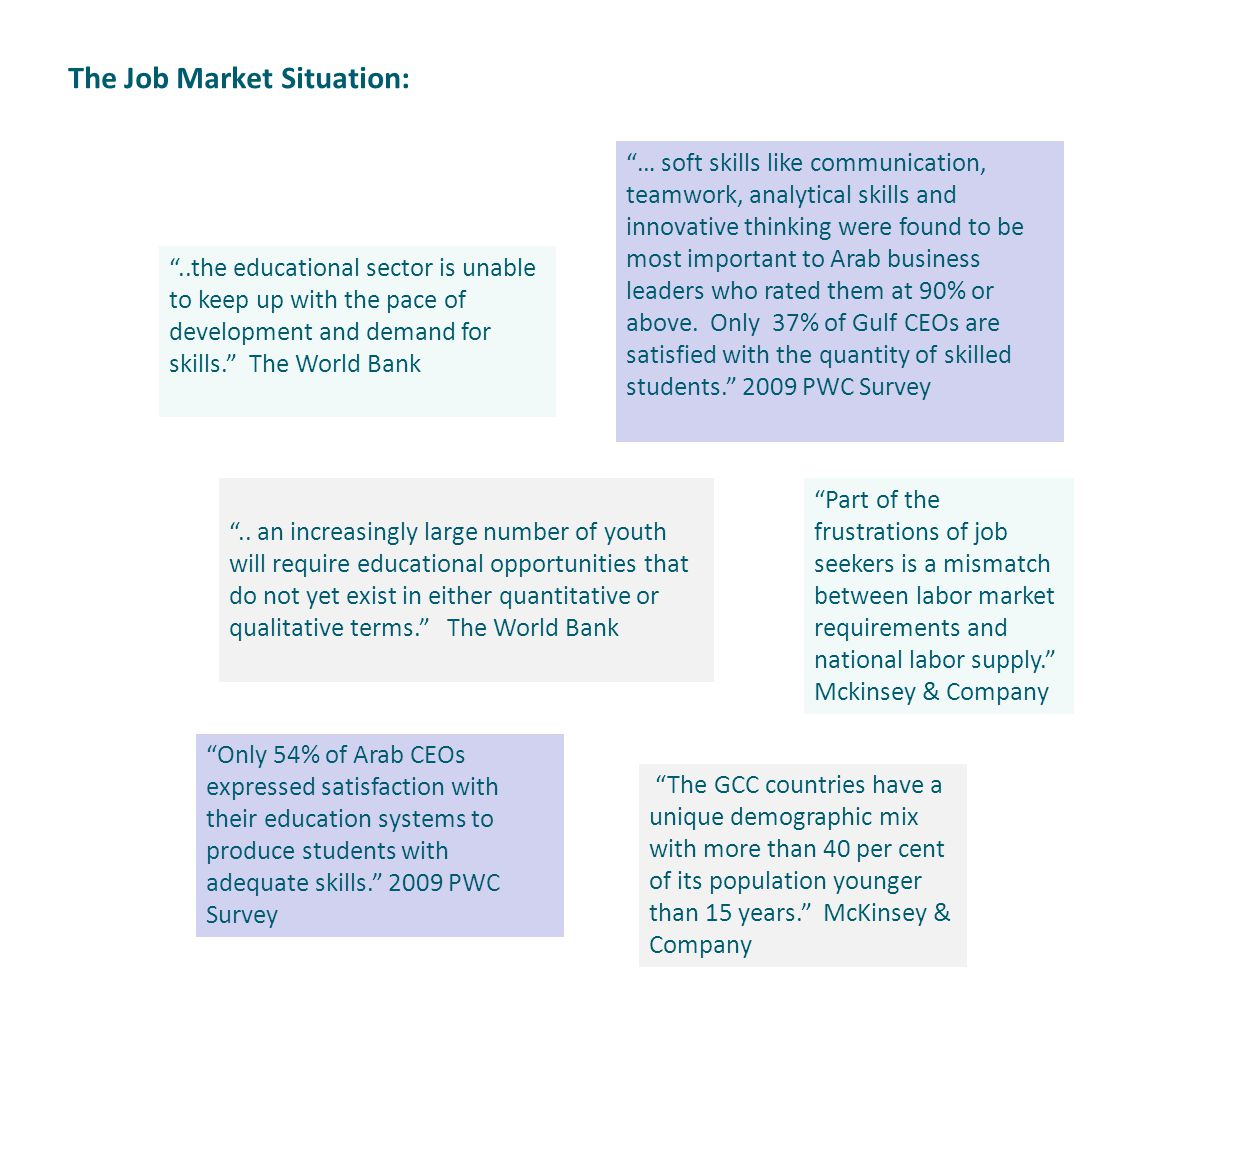 The Job Market Situation: The GCC countries have a unique demographic mix with more than 40 per cent of its population younger than 15 years. McKinsey & Company ..